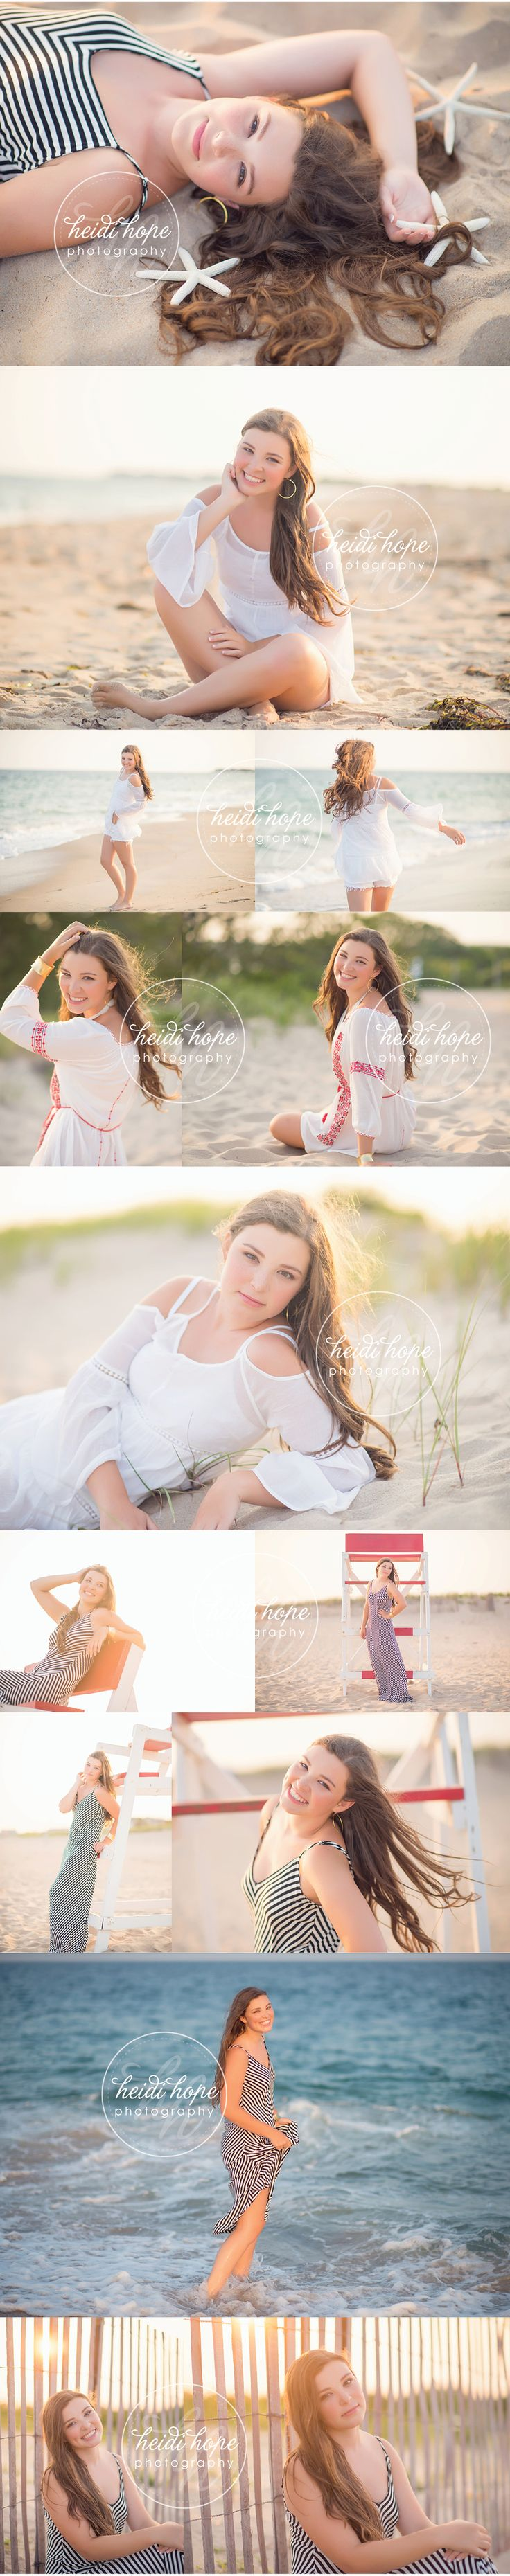 Senior Session, Beach Edition!  #seniorsession #beachedition #seniorportraits